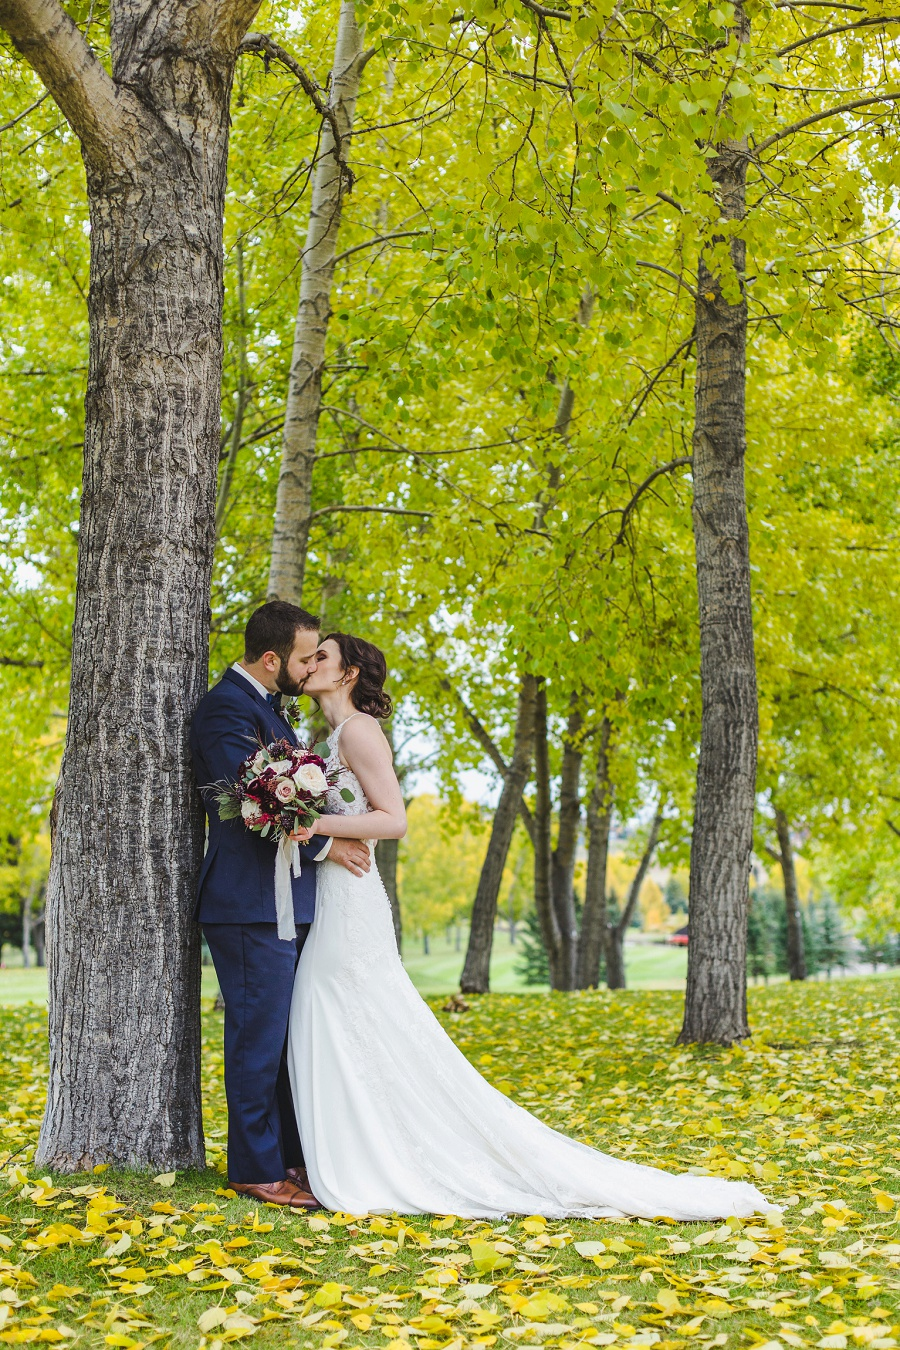 calgary pinebrook golf and country club wedding fall trees yellow leaves